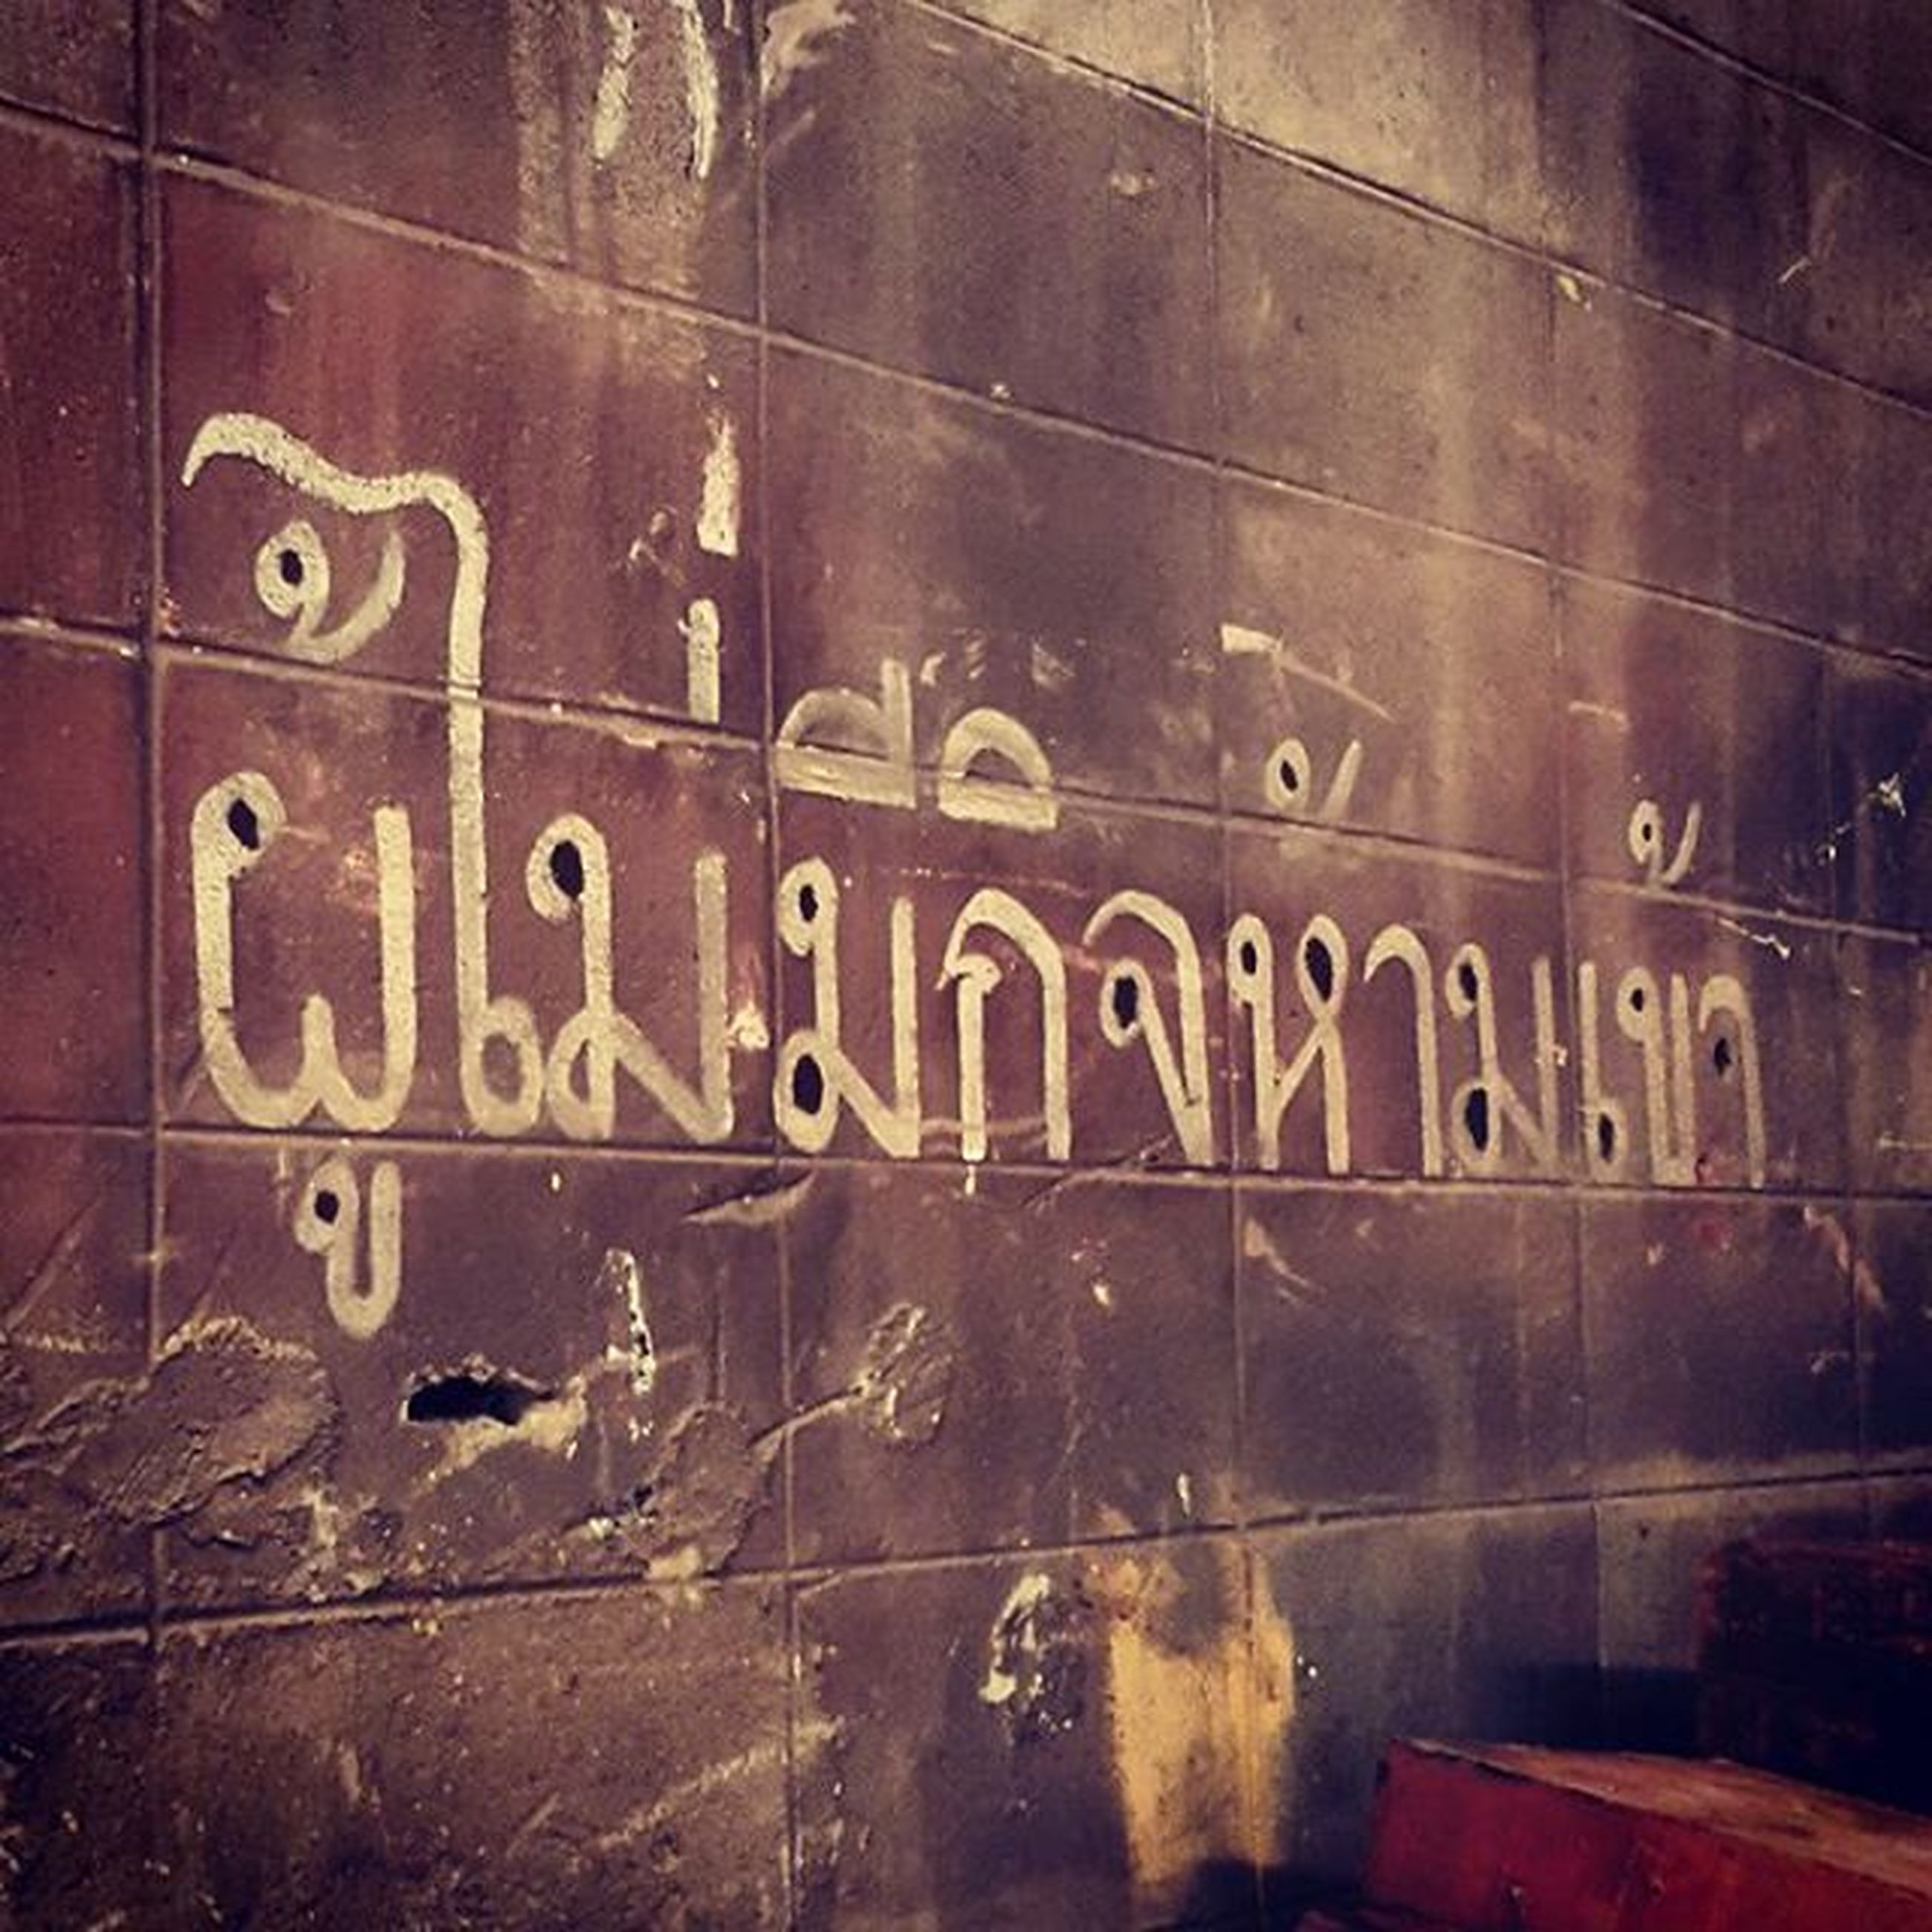 indoors, wall - building feature, text, built structure, architecture, communication, western script, graffiti, number, no people, wall, brick wall, abandoned, damaged, full frame, building, day, old, capital letter, building exterior